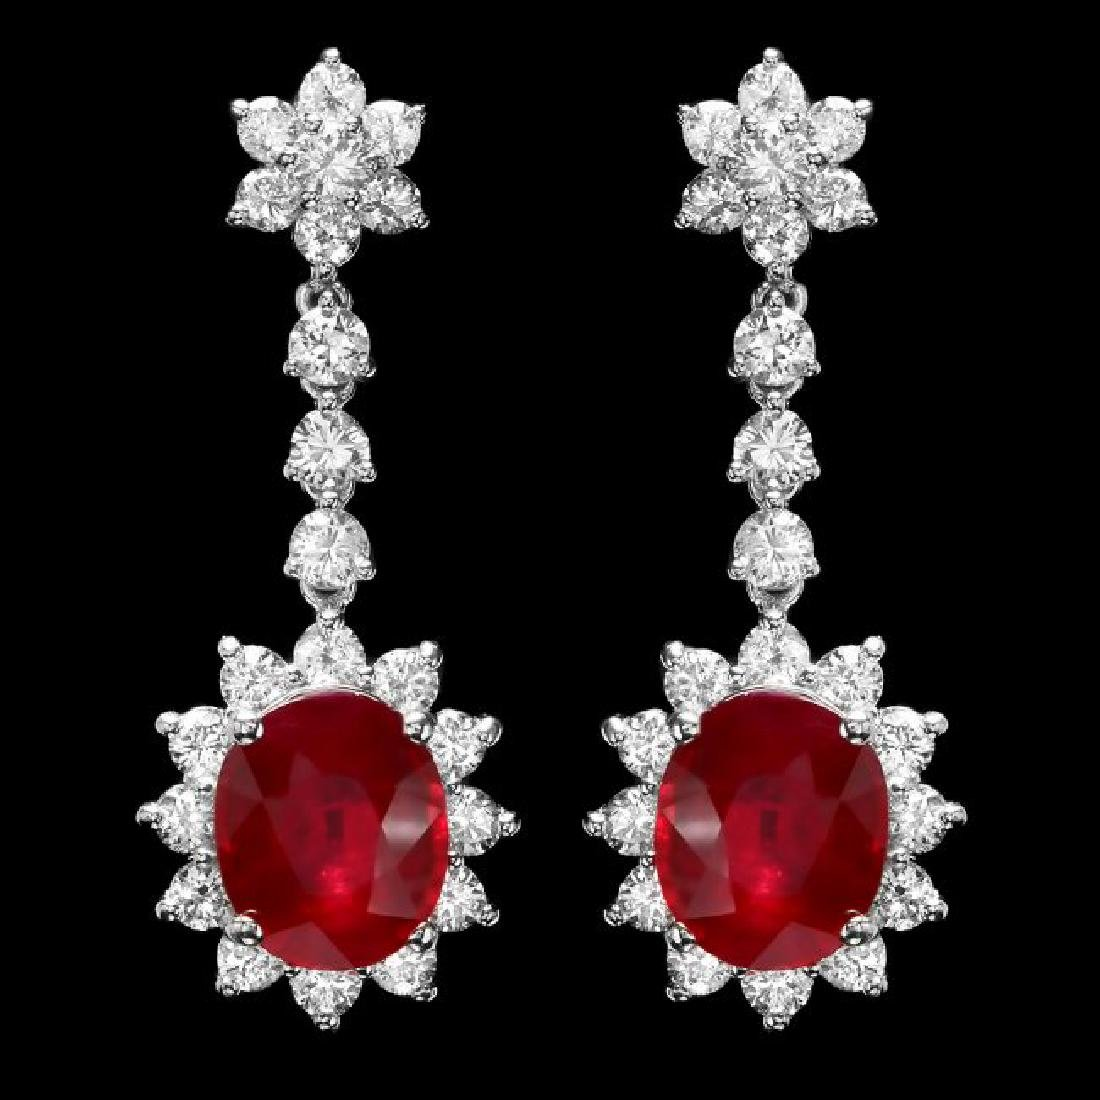 14k Gold 9.00ct Ruby 3.00ct Diamond Earrings - 2